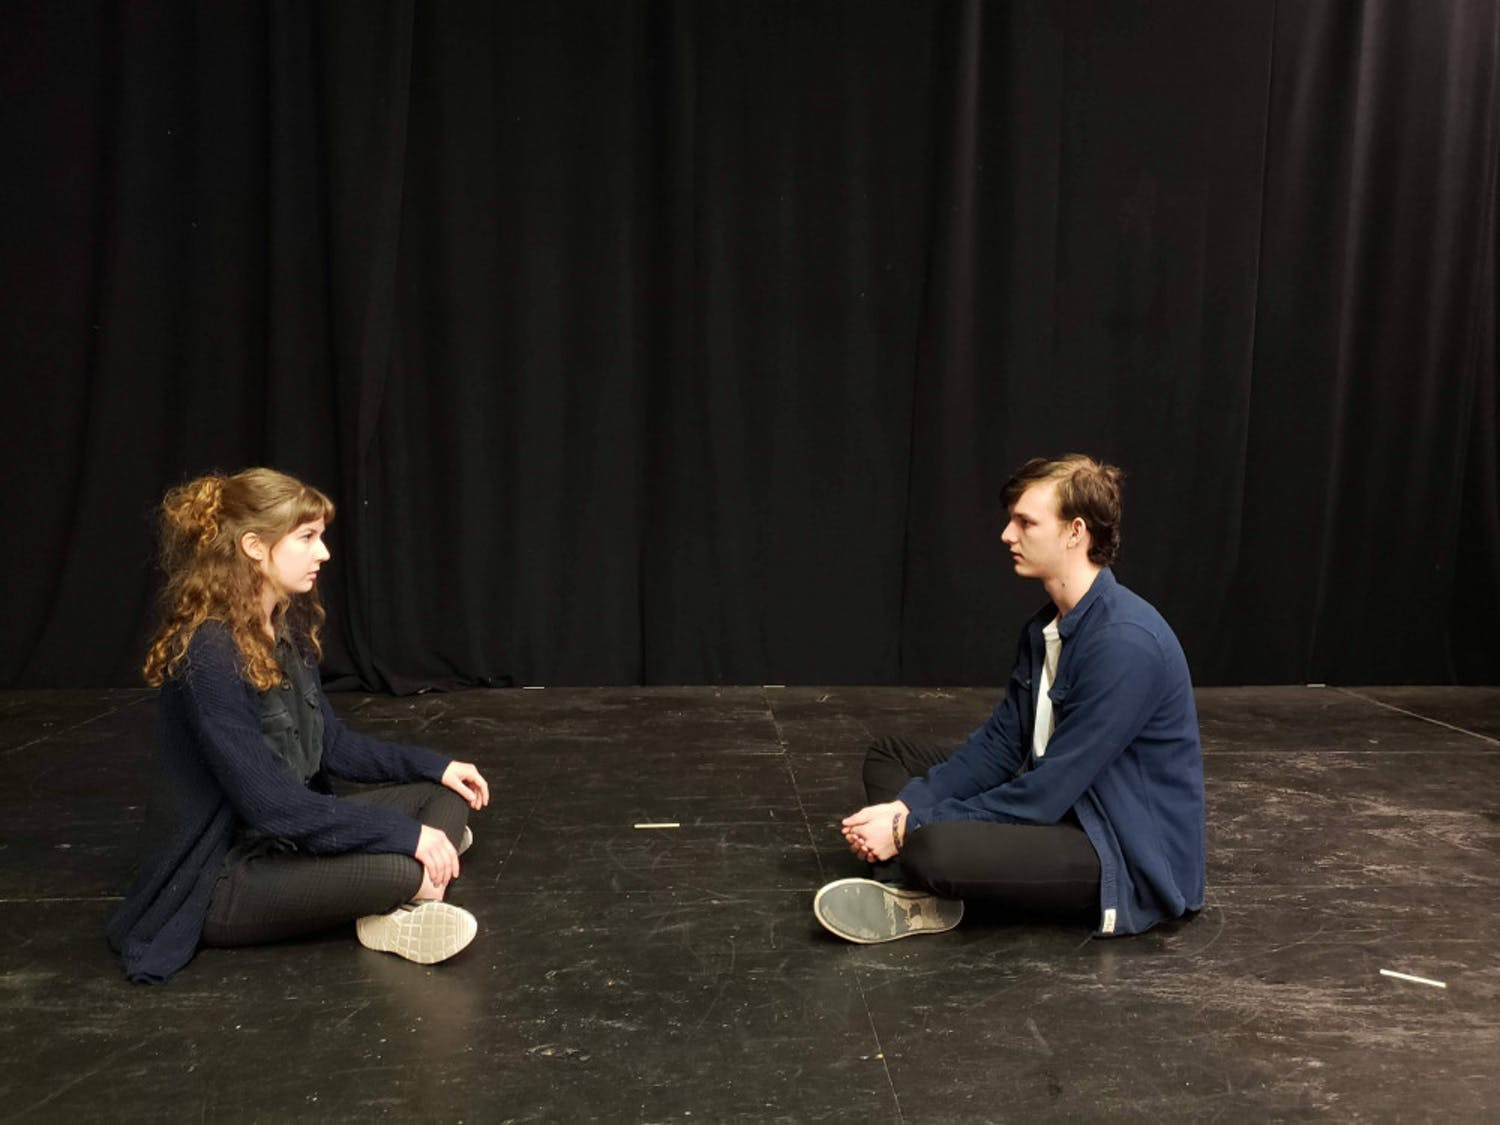 Aaron Kienstra, a 19-year-old UF acting sophomore, and Kara Gordon, a 19-year-old UF theatre freshman, portray the schoolhouse shooter and his wife.